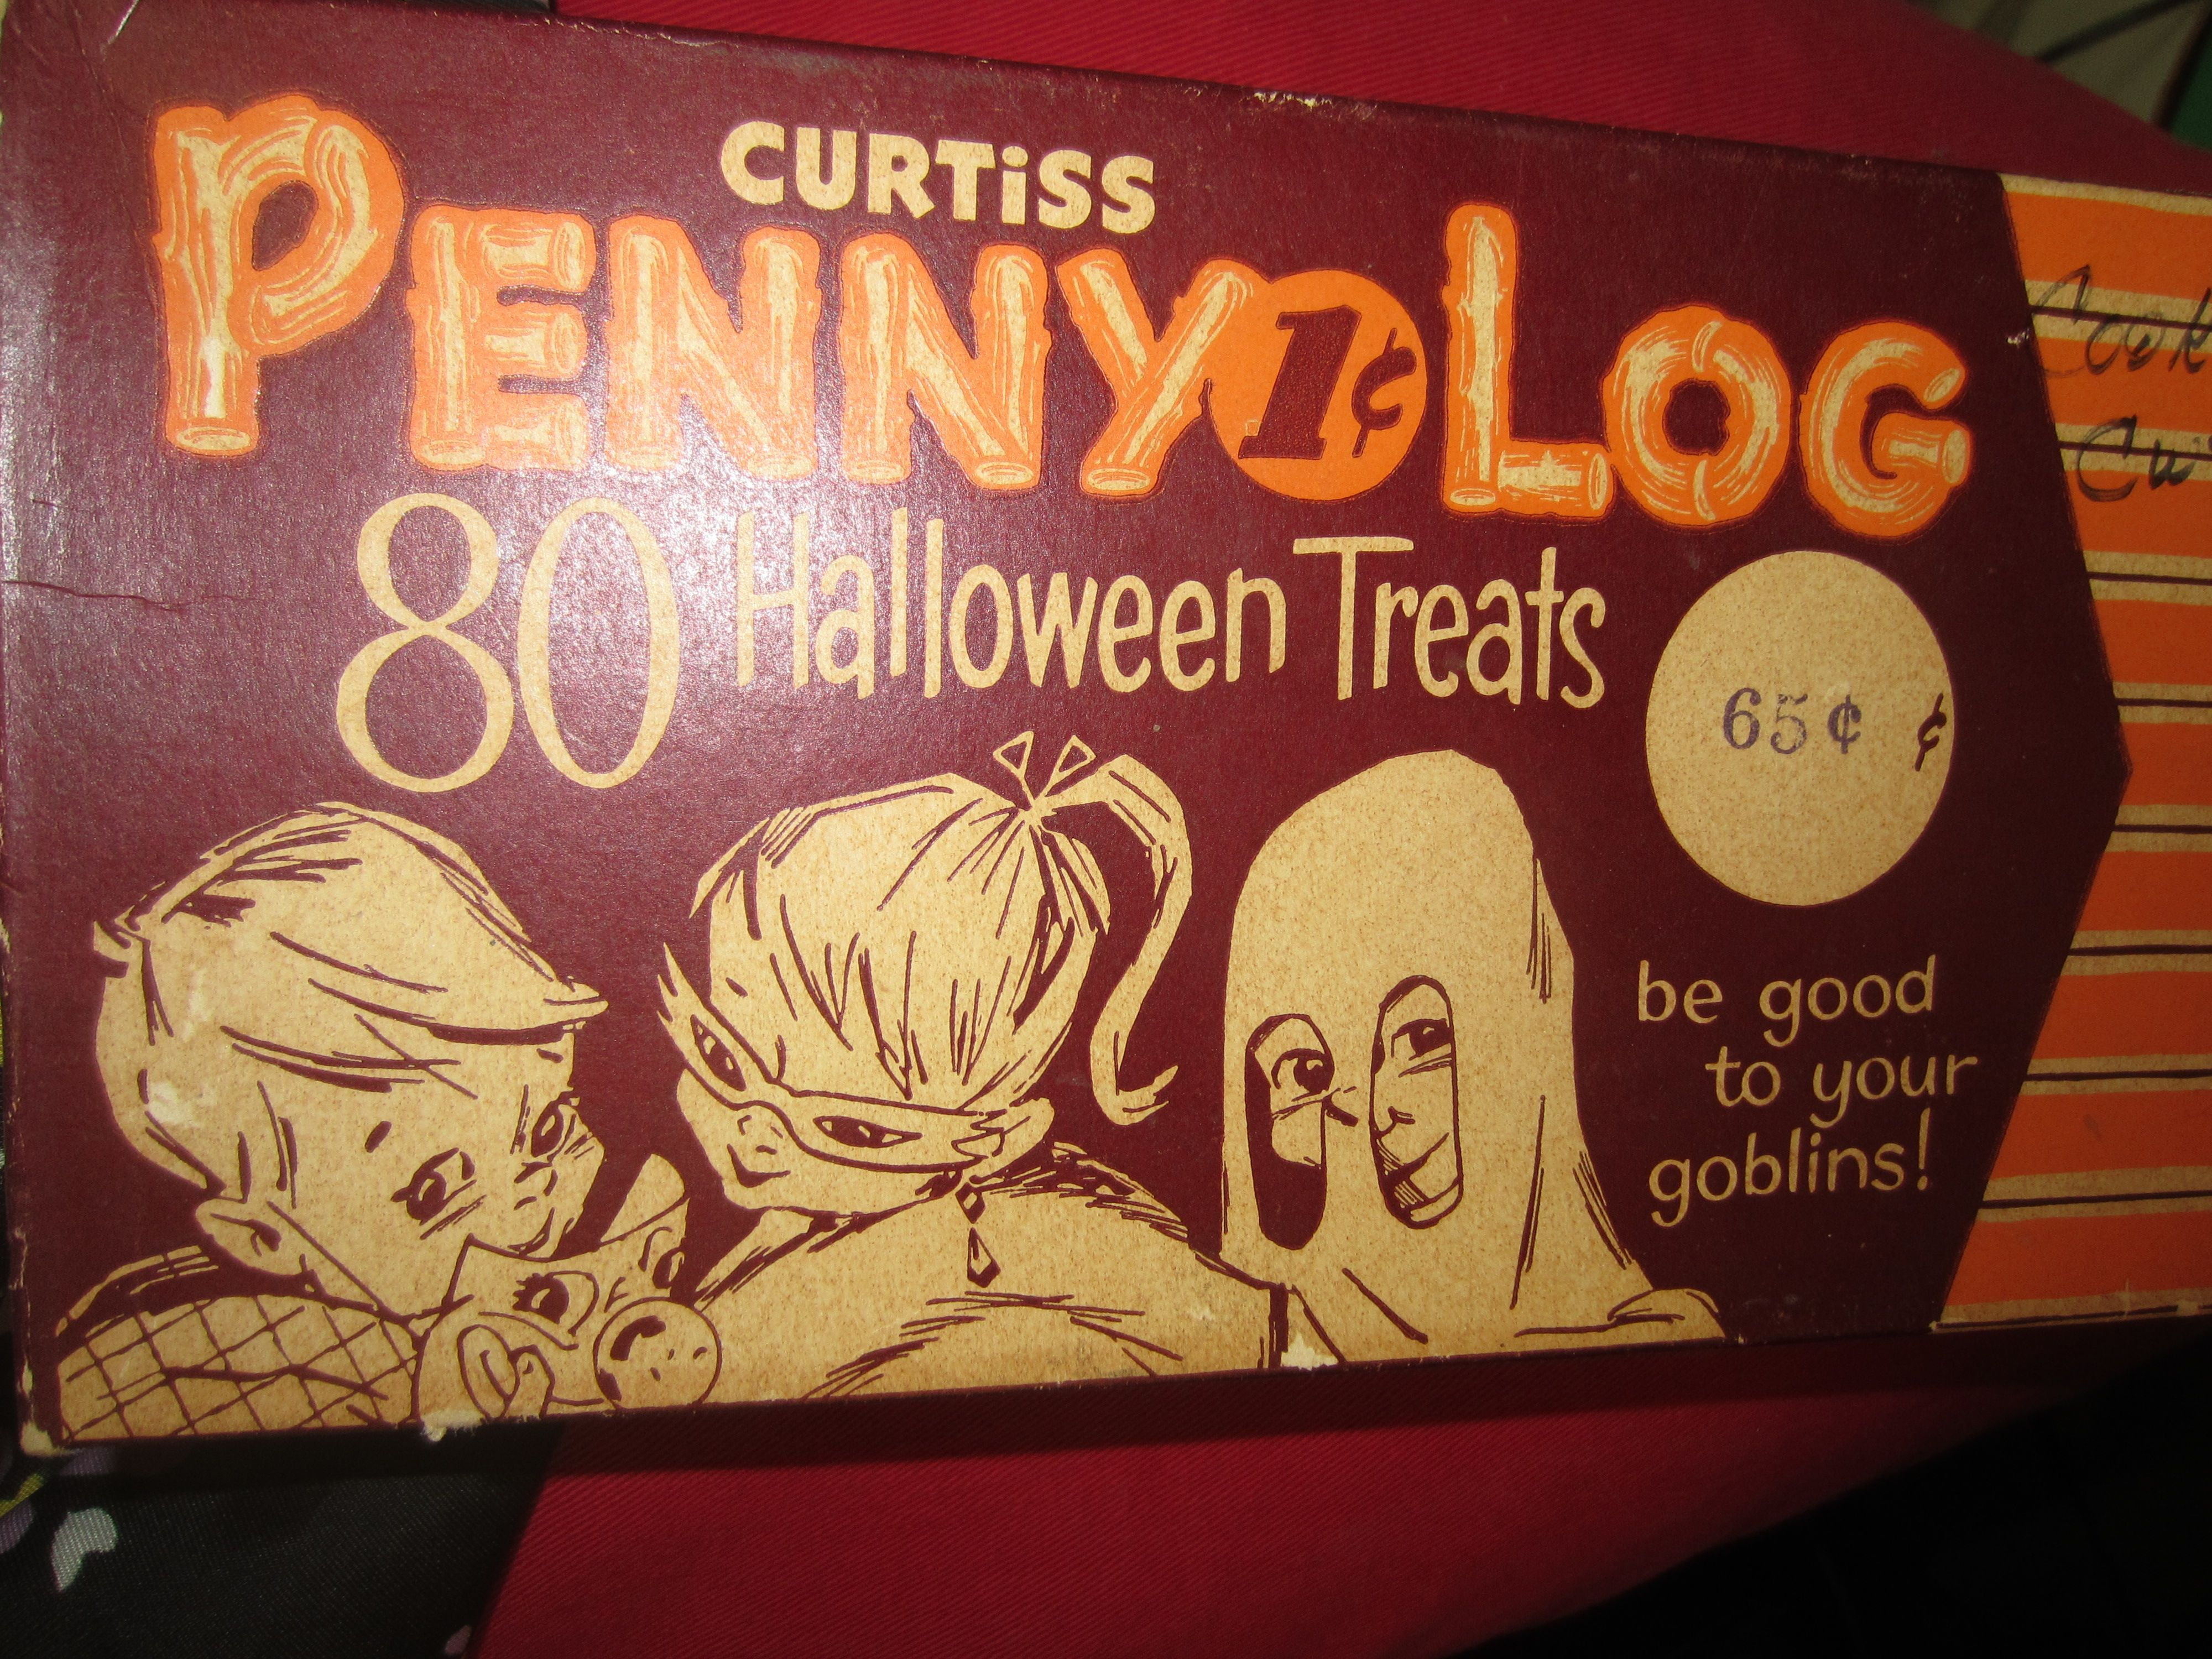 vintage curtiss penny log 1 cent halloween candies box top kitschy cute - Top Ten Halloween Candies